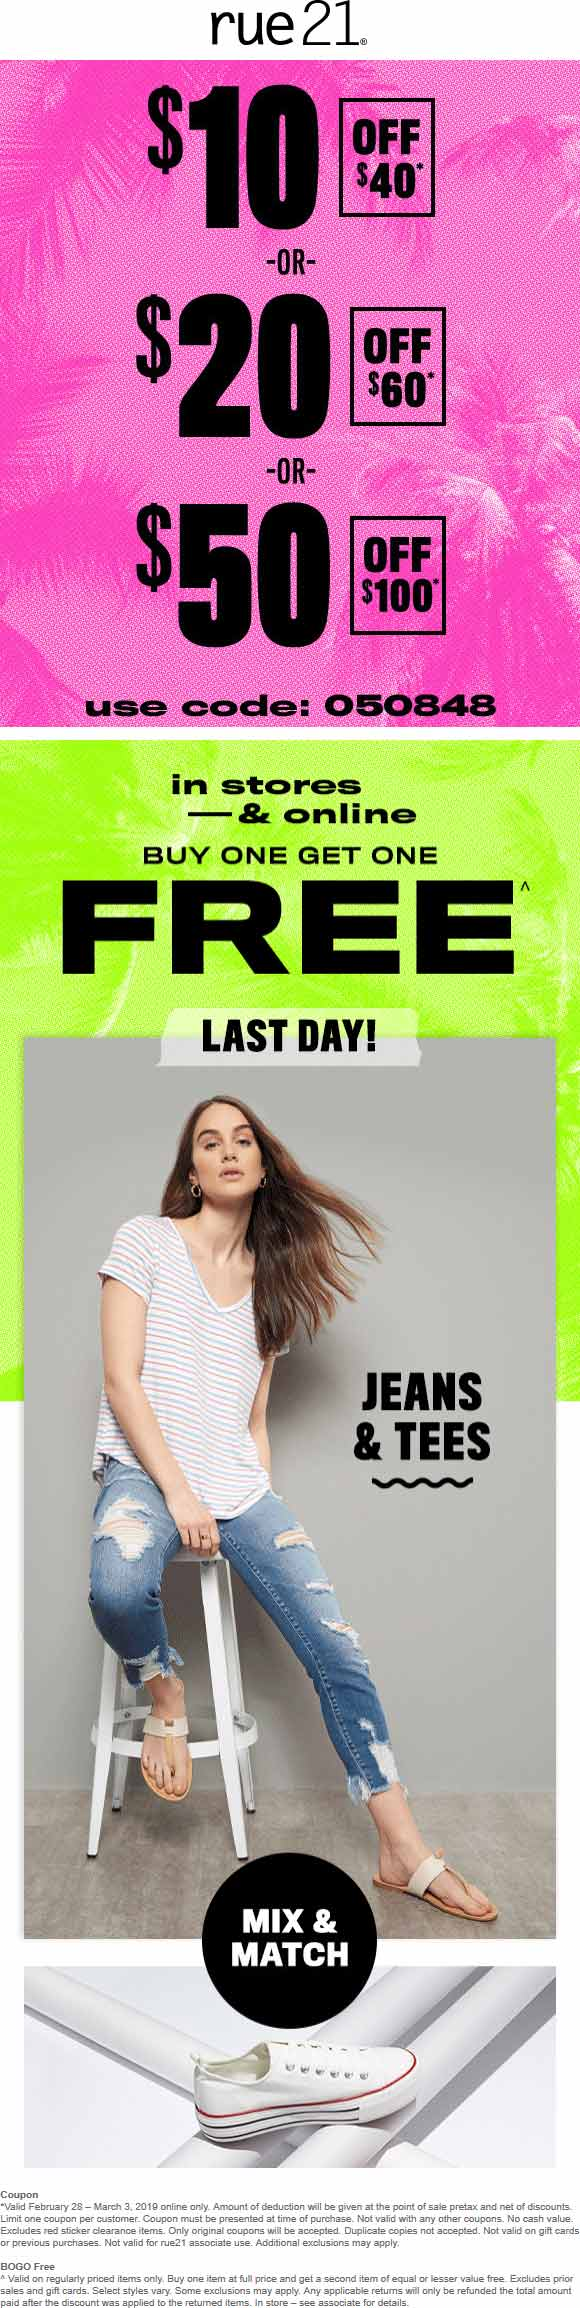 Rue21 Coupon December 2019 Second item free today at rue21, also $10-$50 off $40+ online via promo code 050848